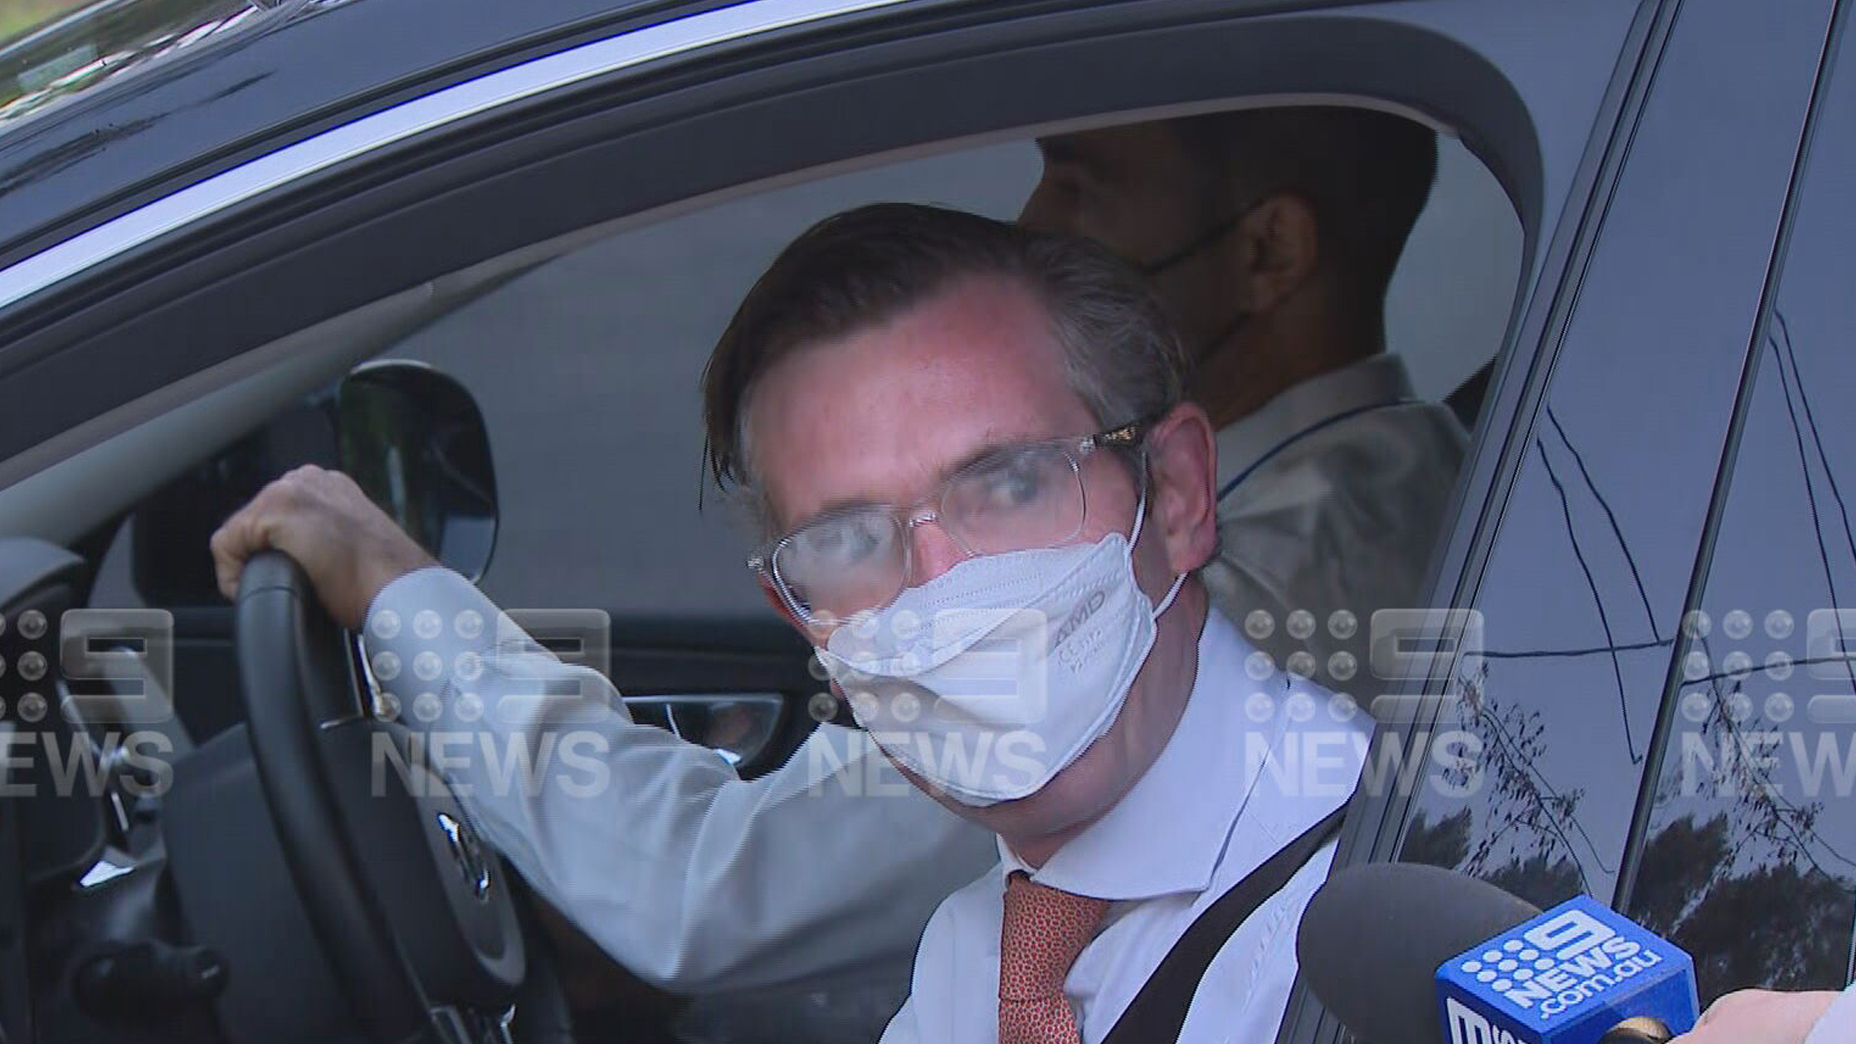 New NSW Premier Dominic Perrottet is on his way to work.